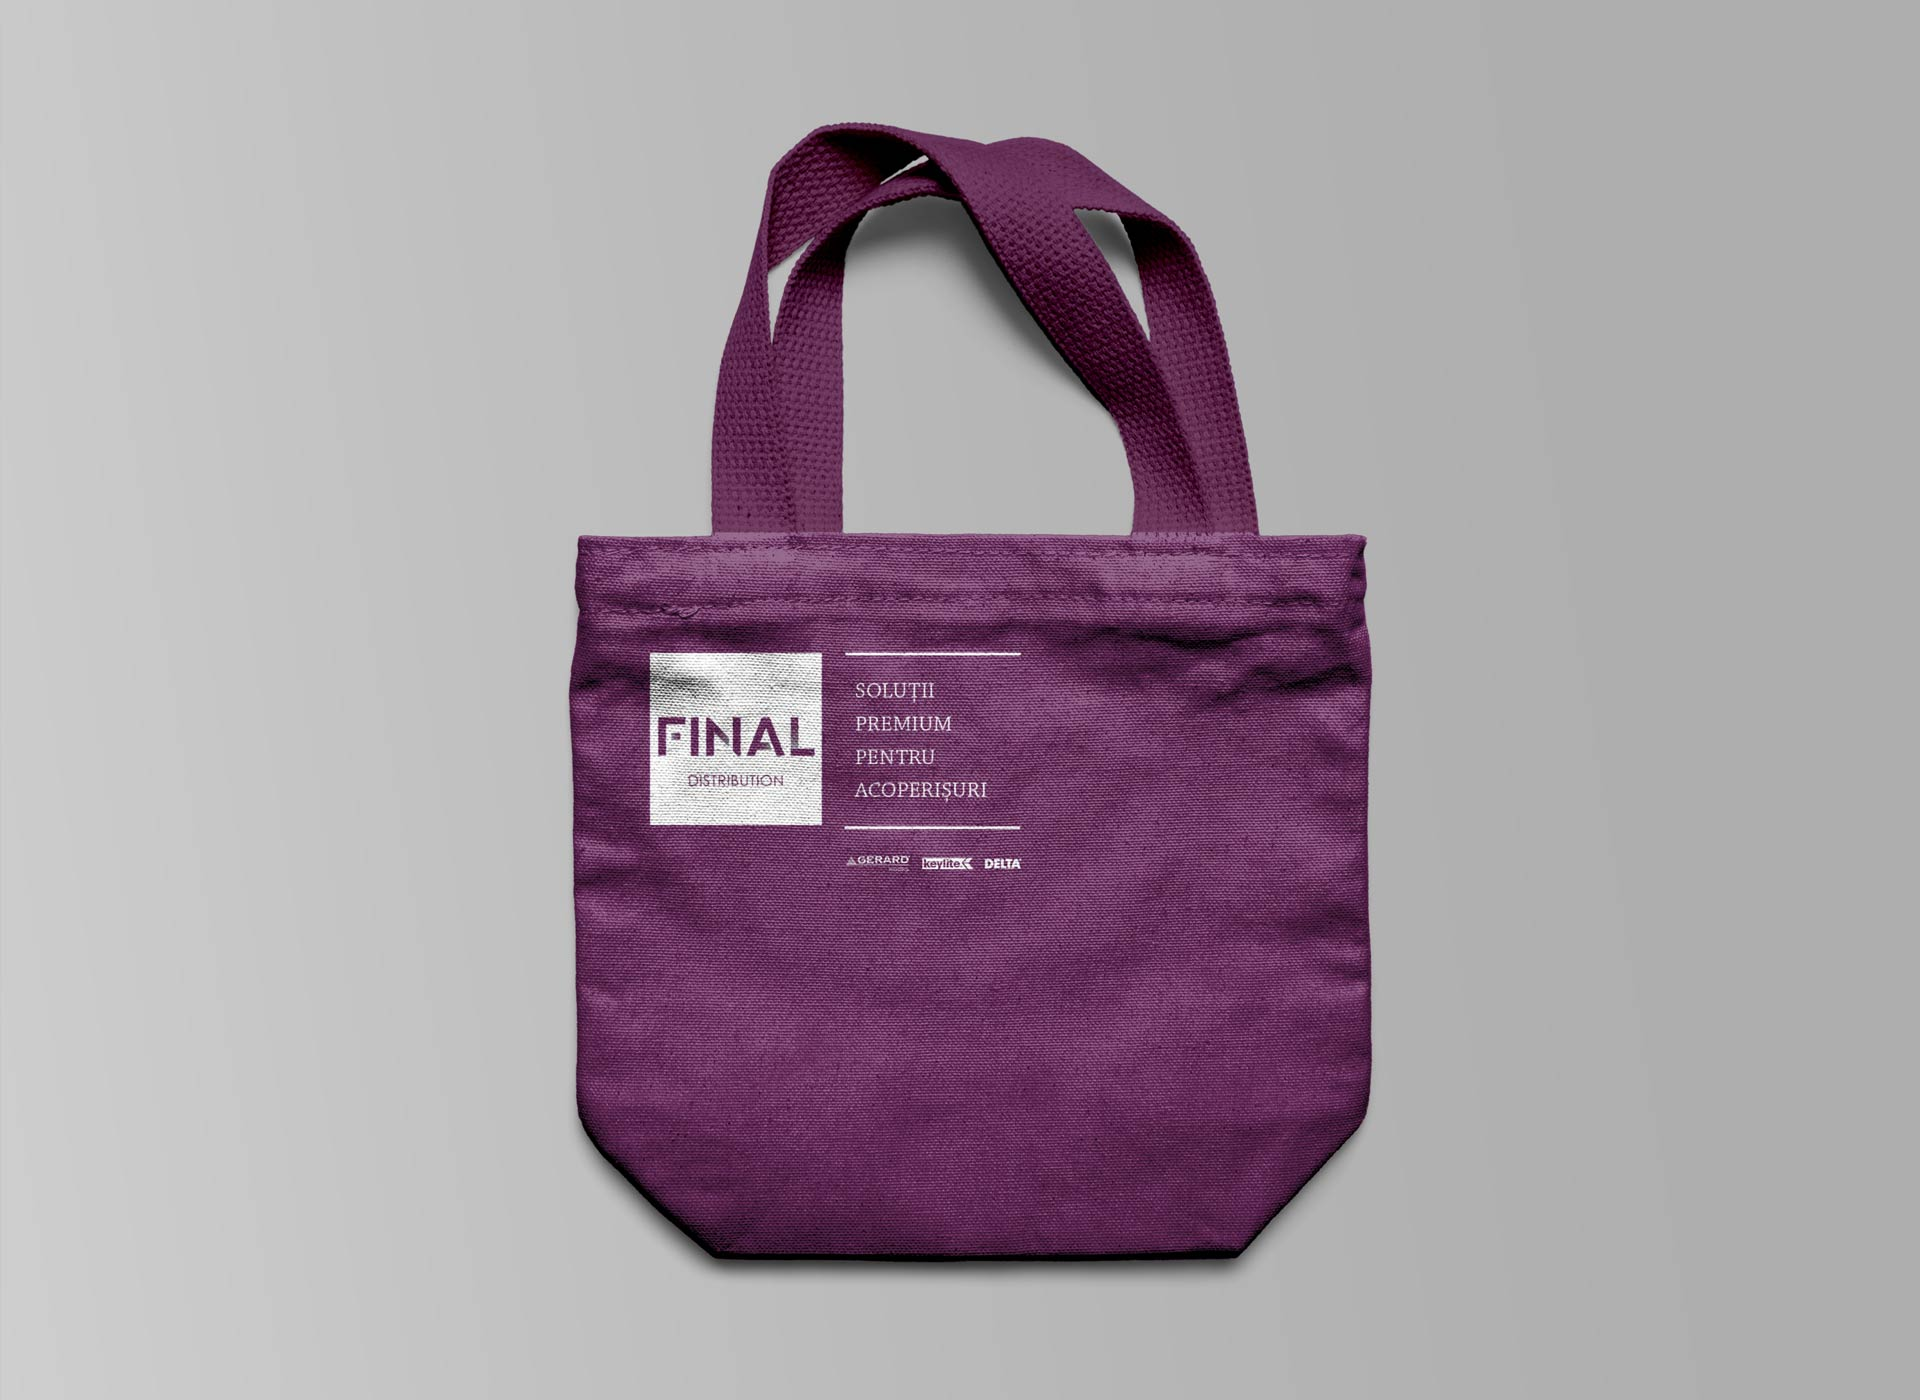 final distribution portfolio inoveo bag